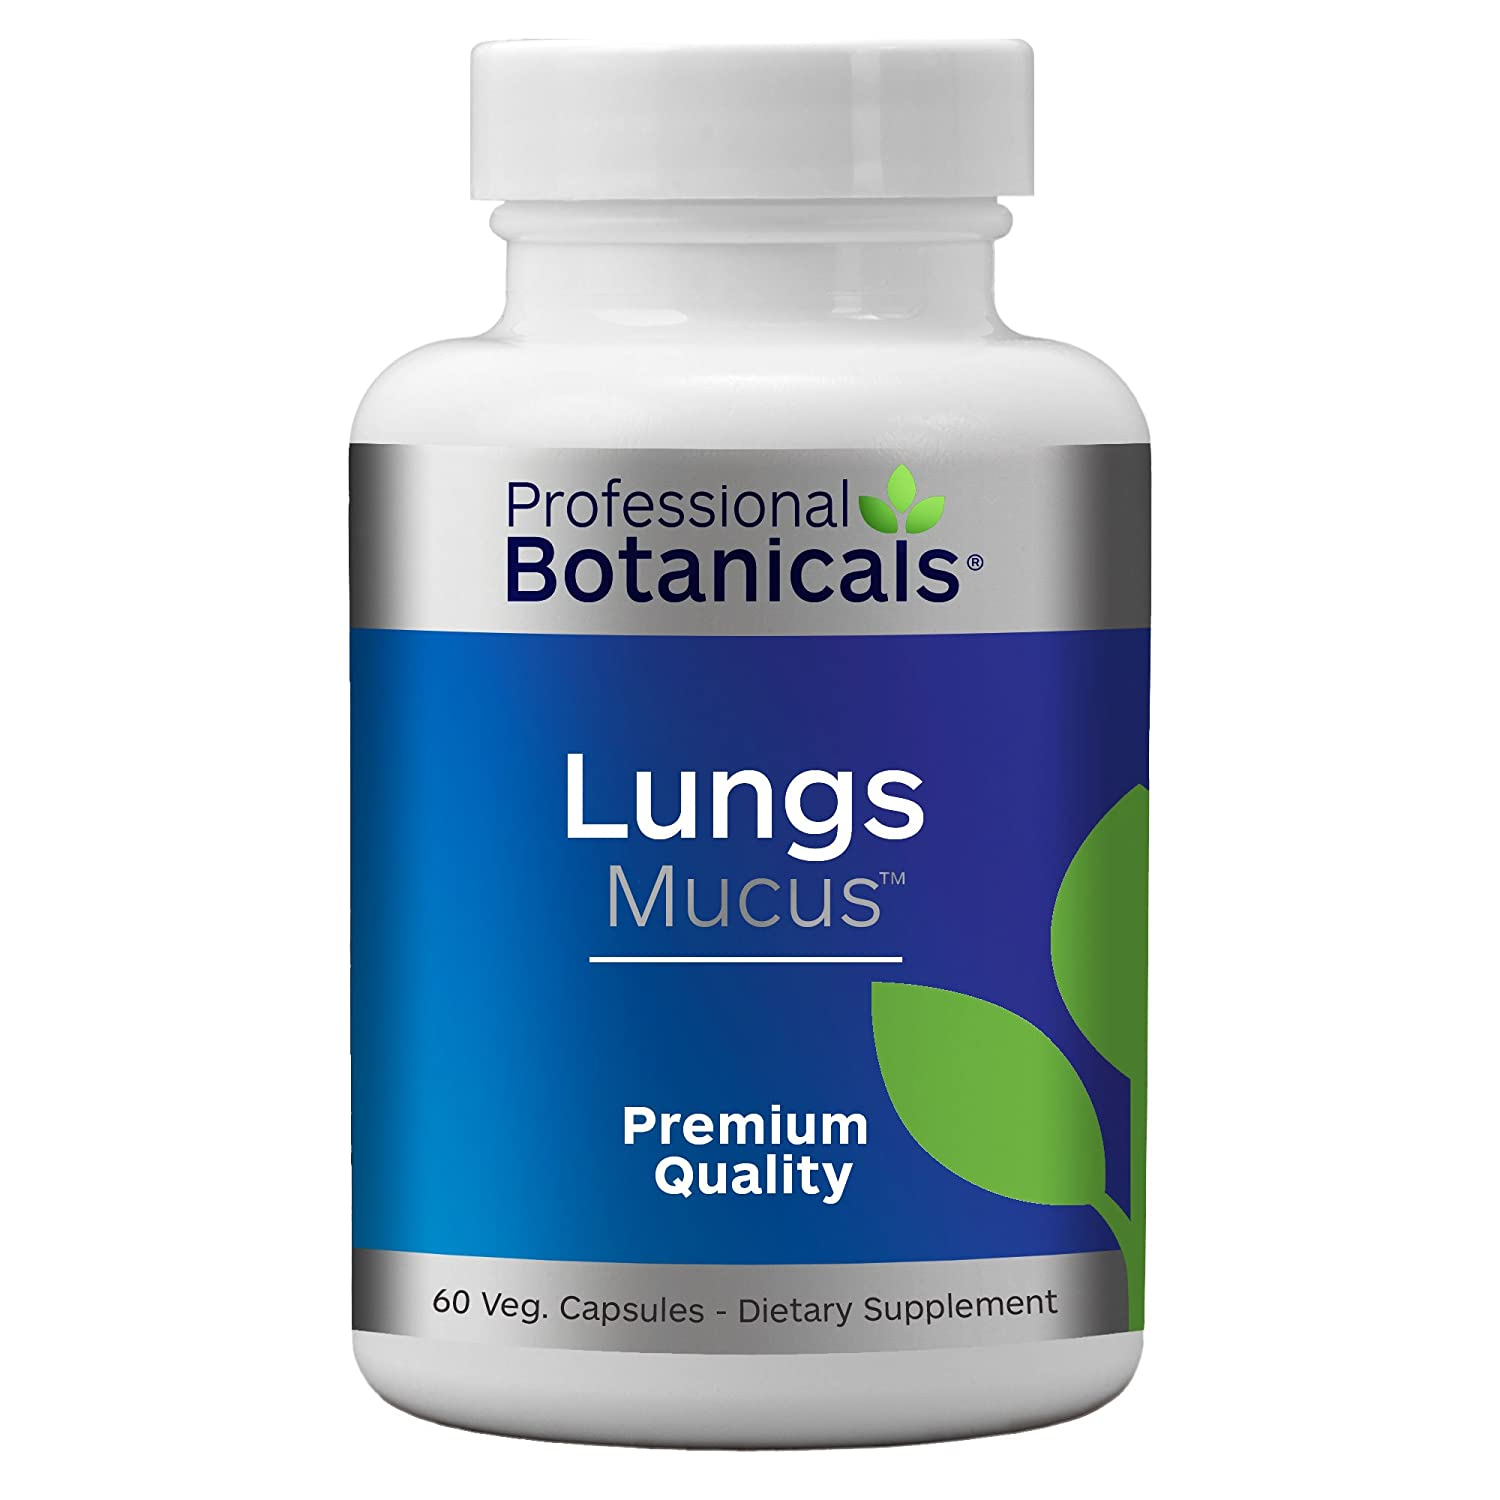 Professional Botanicals Lungs Mucus – Vegan Lung Cleanse Herbal Lung Health Supplement – 60 Vegetarian Capsules